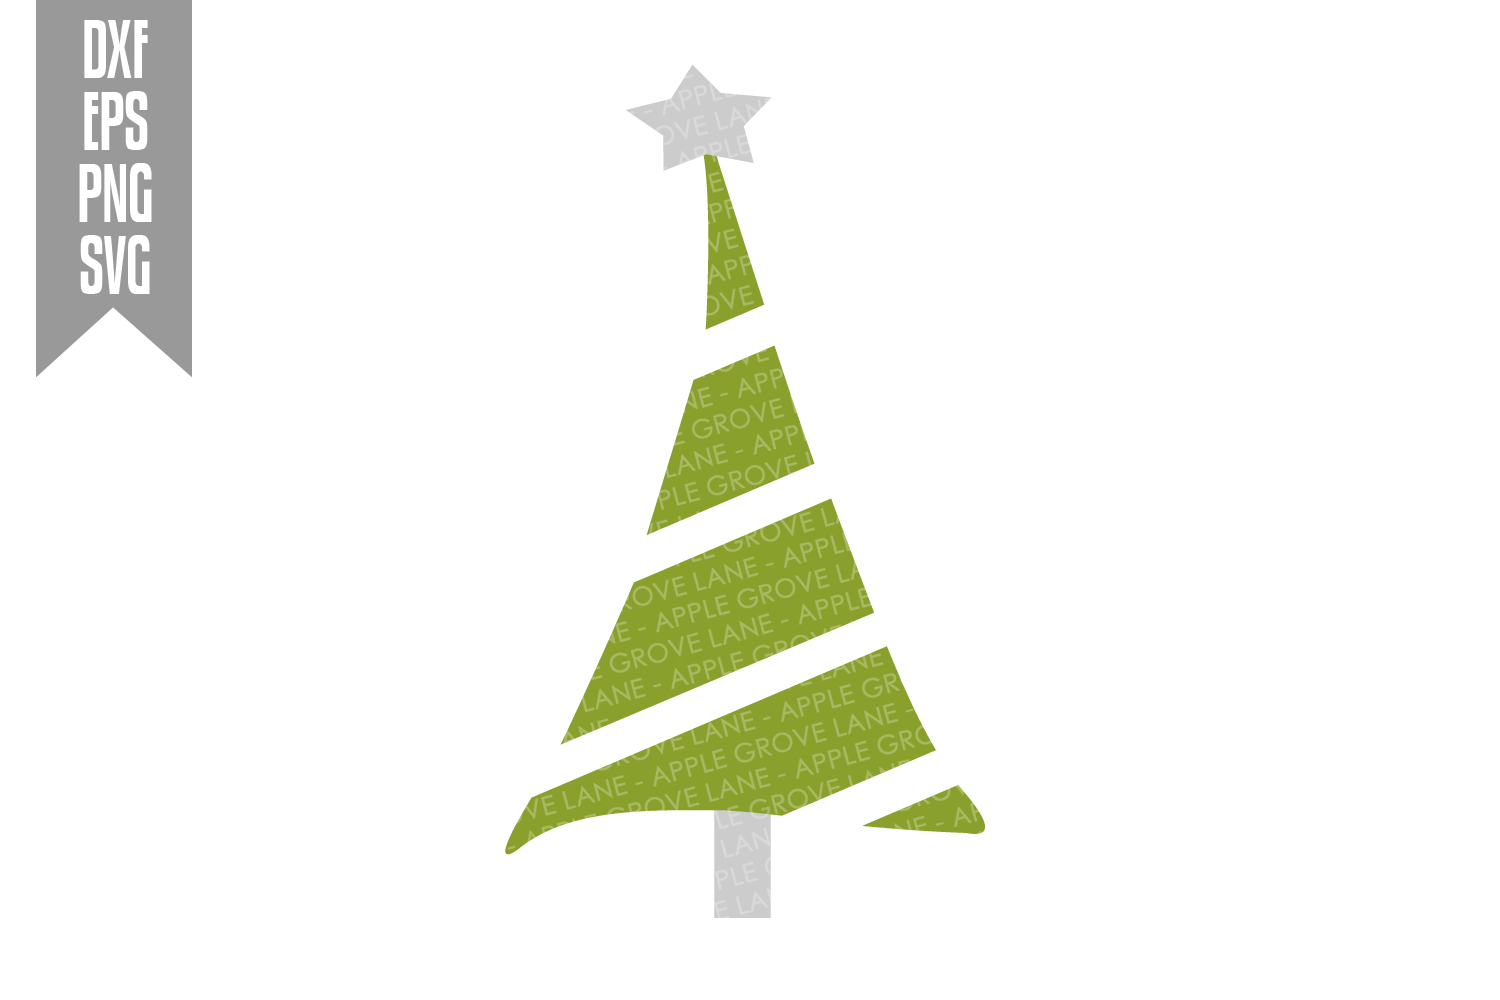 Christmas Tree Svg Bundle - 6 designs included - Svg File example image 3